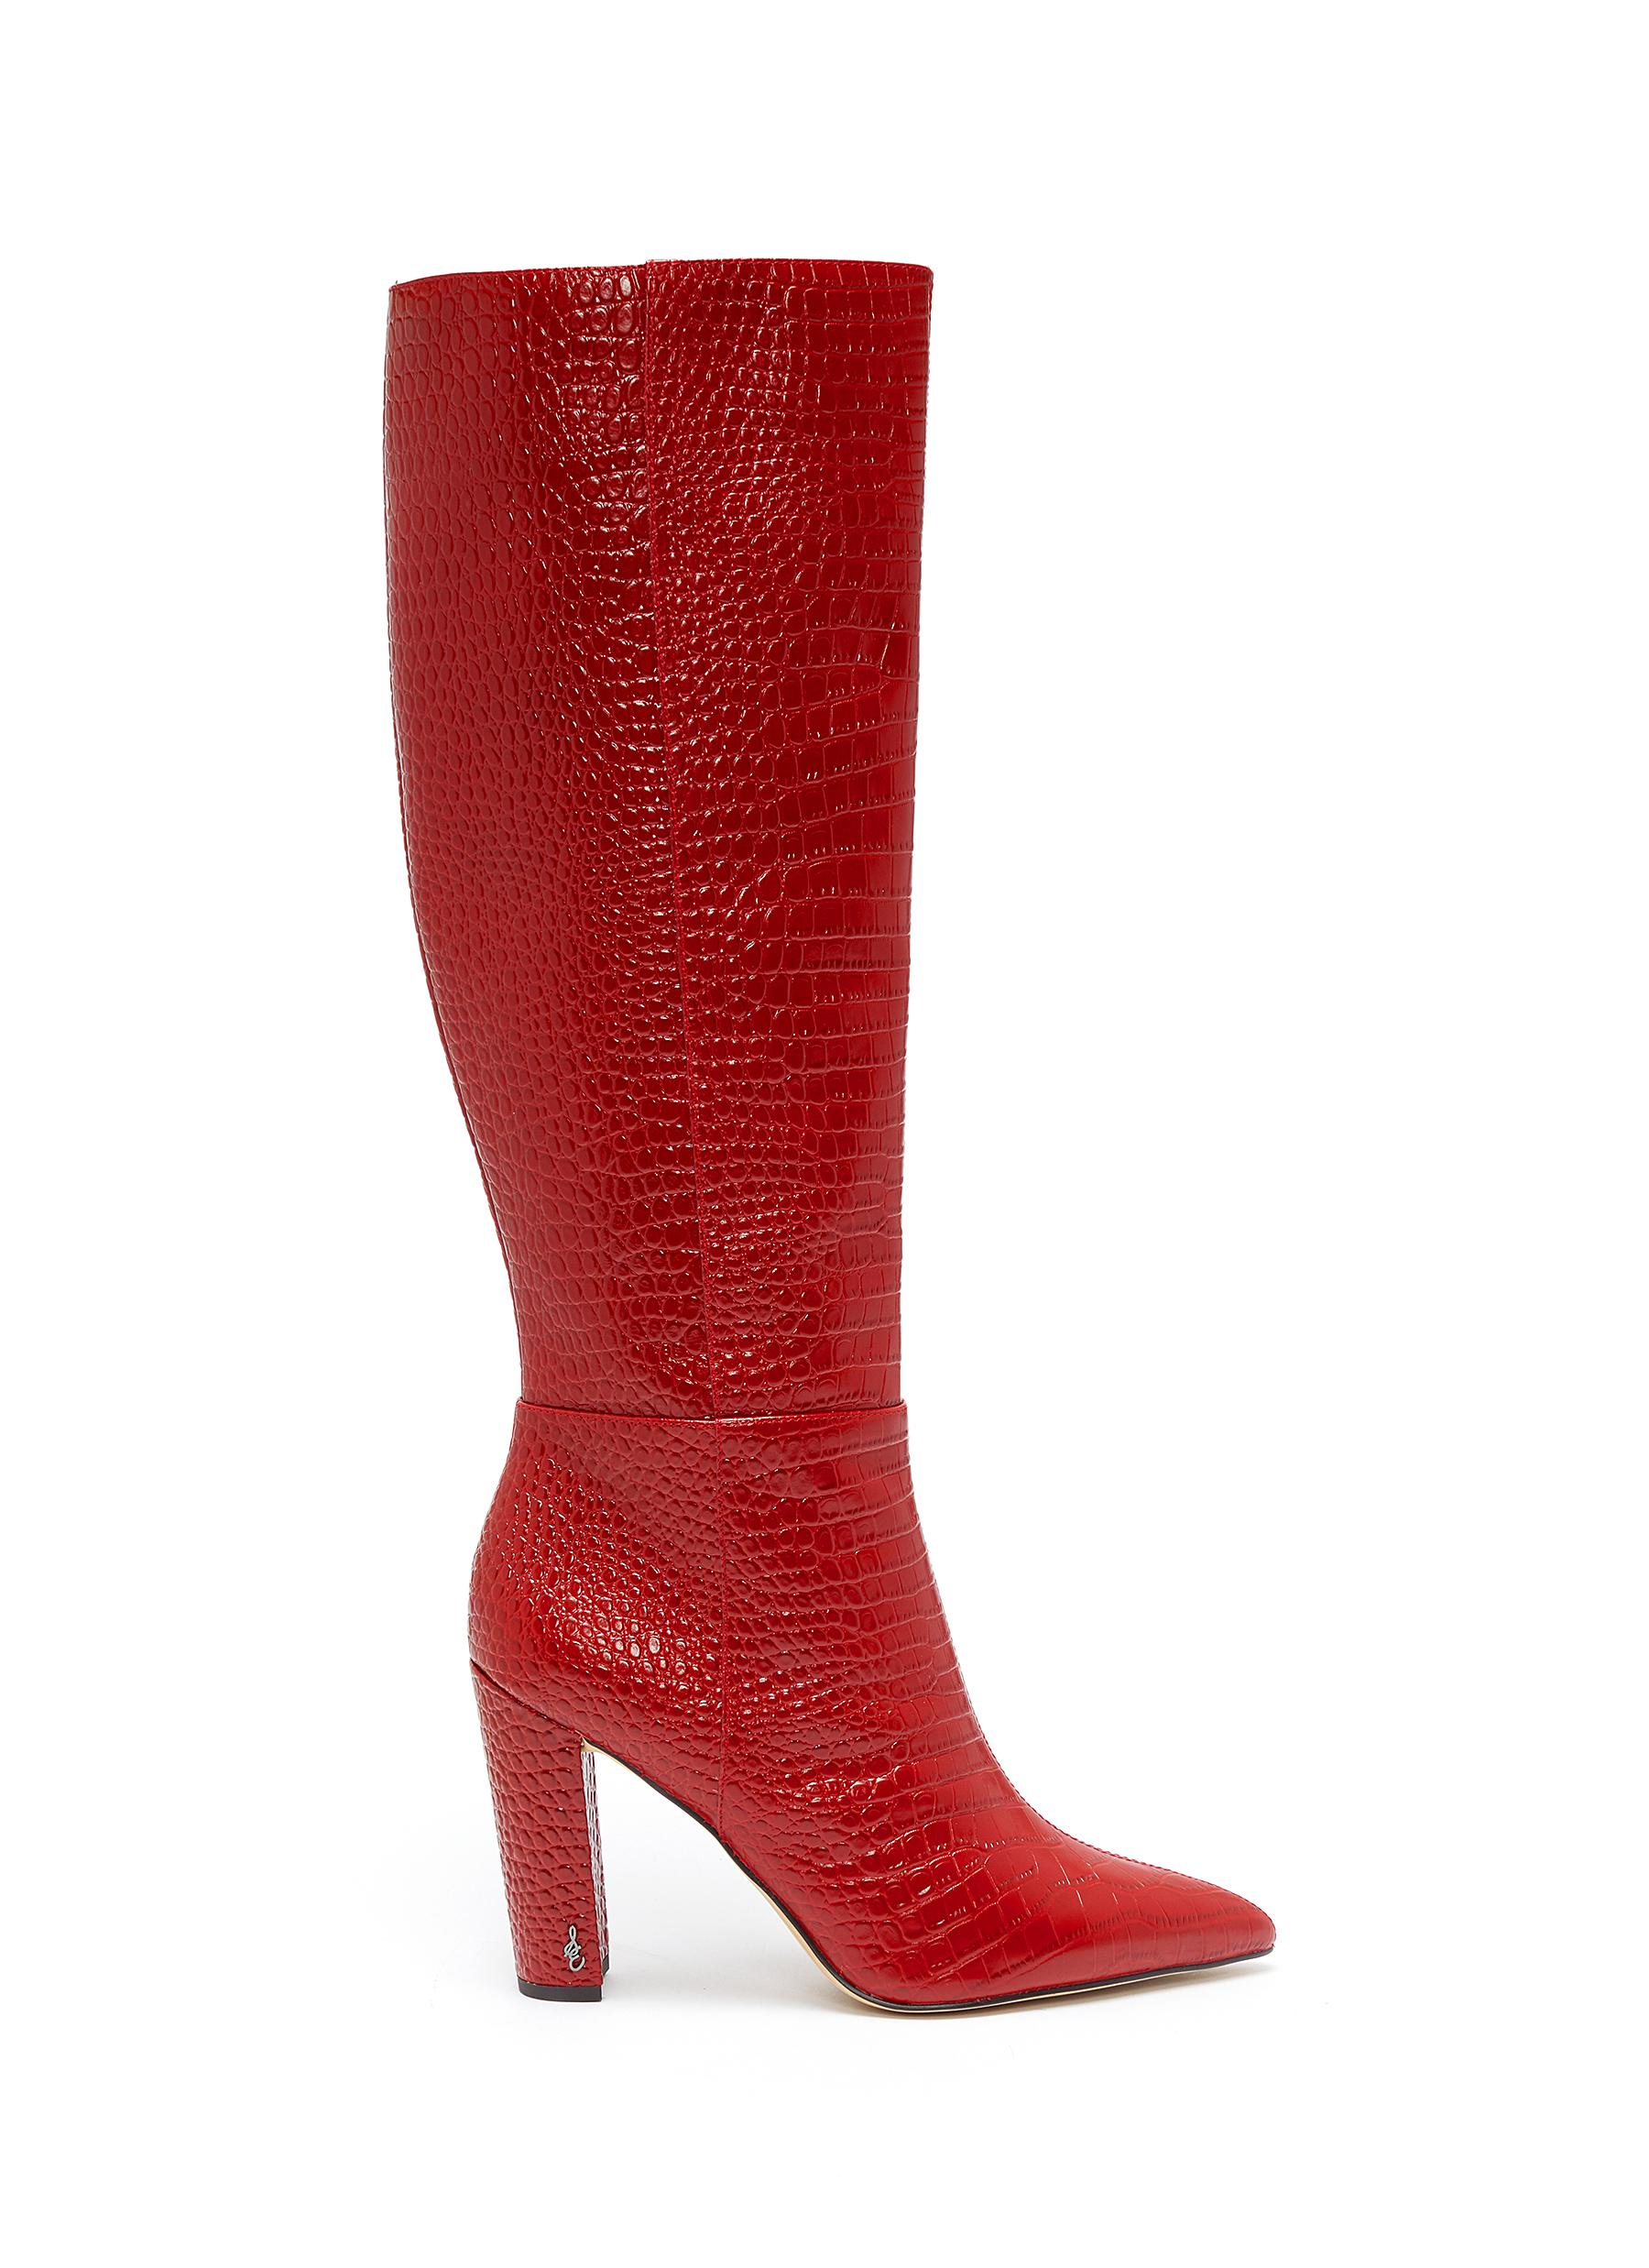 Raakel croc embossed leather knee high boots by Sam Edelman